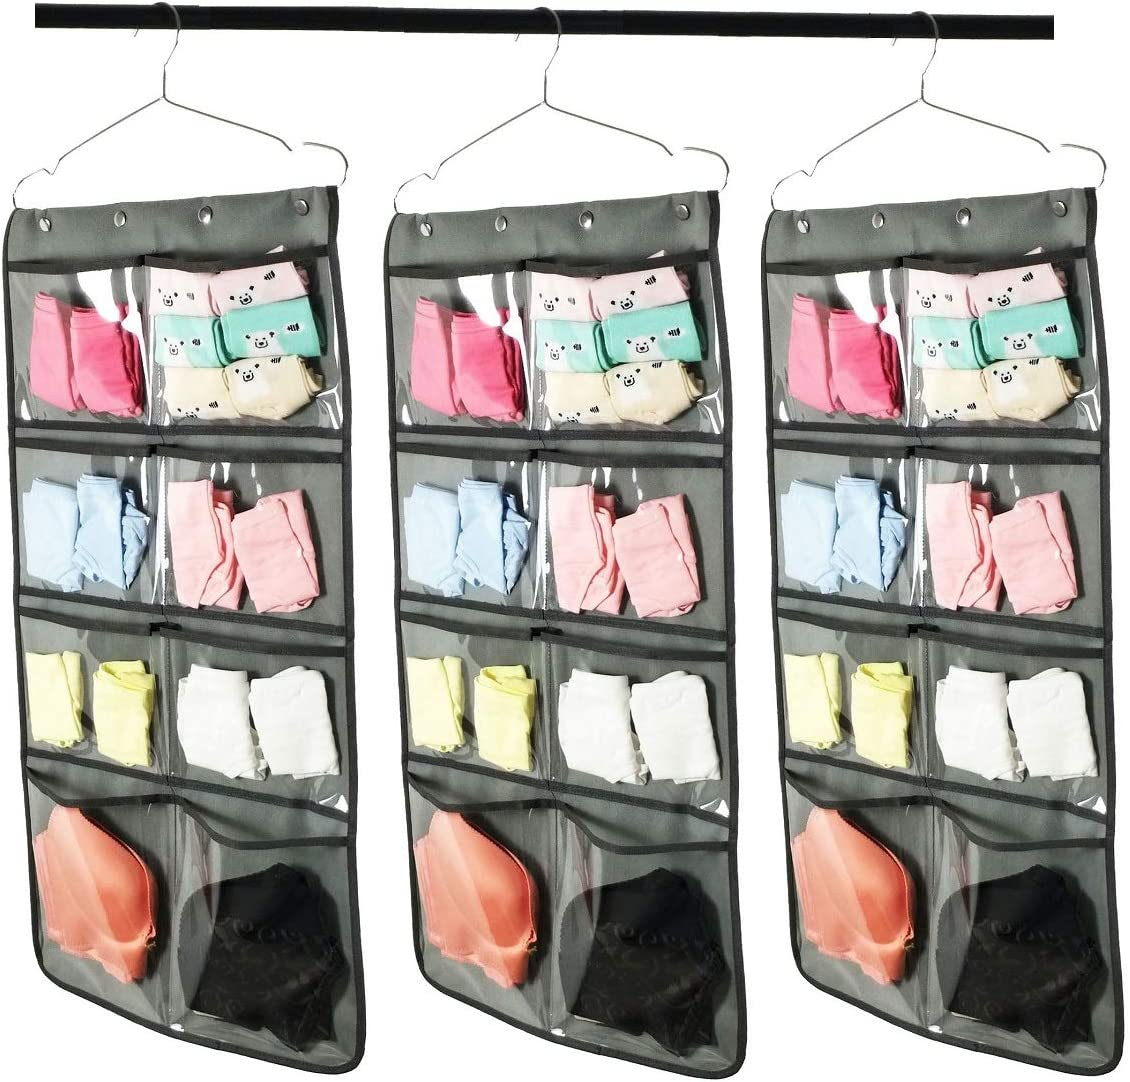 STORBRO Hanging Shelves for Bra,Shoes Sock and Underpants Storage,Closet Hanging Organizer with Dual Sided and Multilayer Mesh Pockets for Bra,Underwear,Bodysuits,1 Packs,Grey